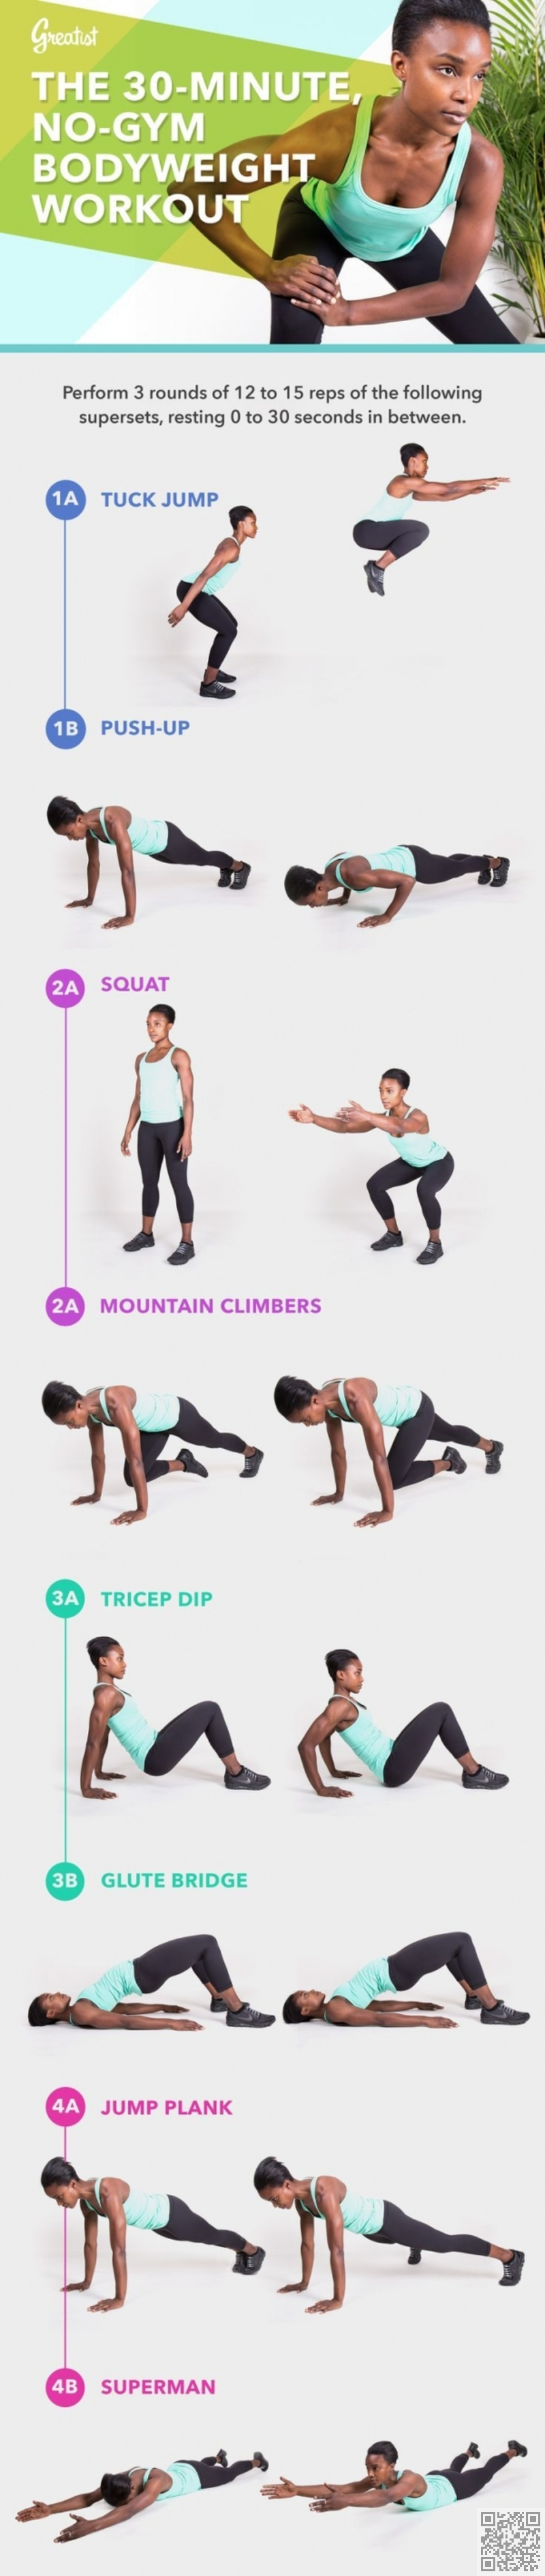 All You Need is  Minutes  Skip the Gym with These